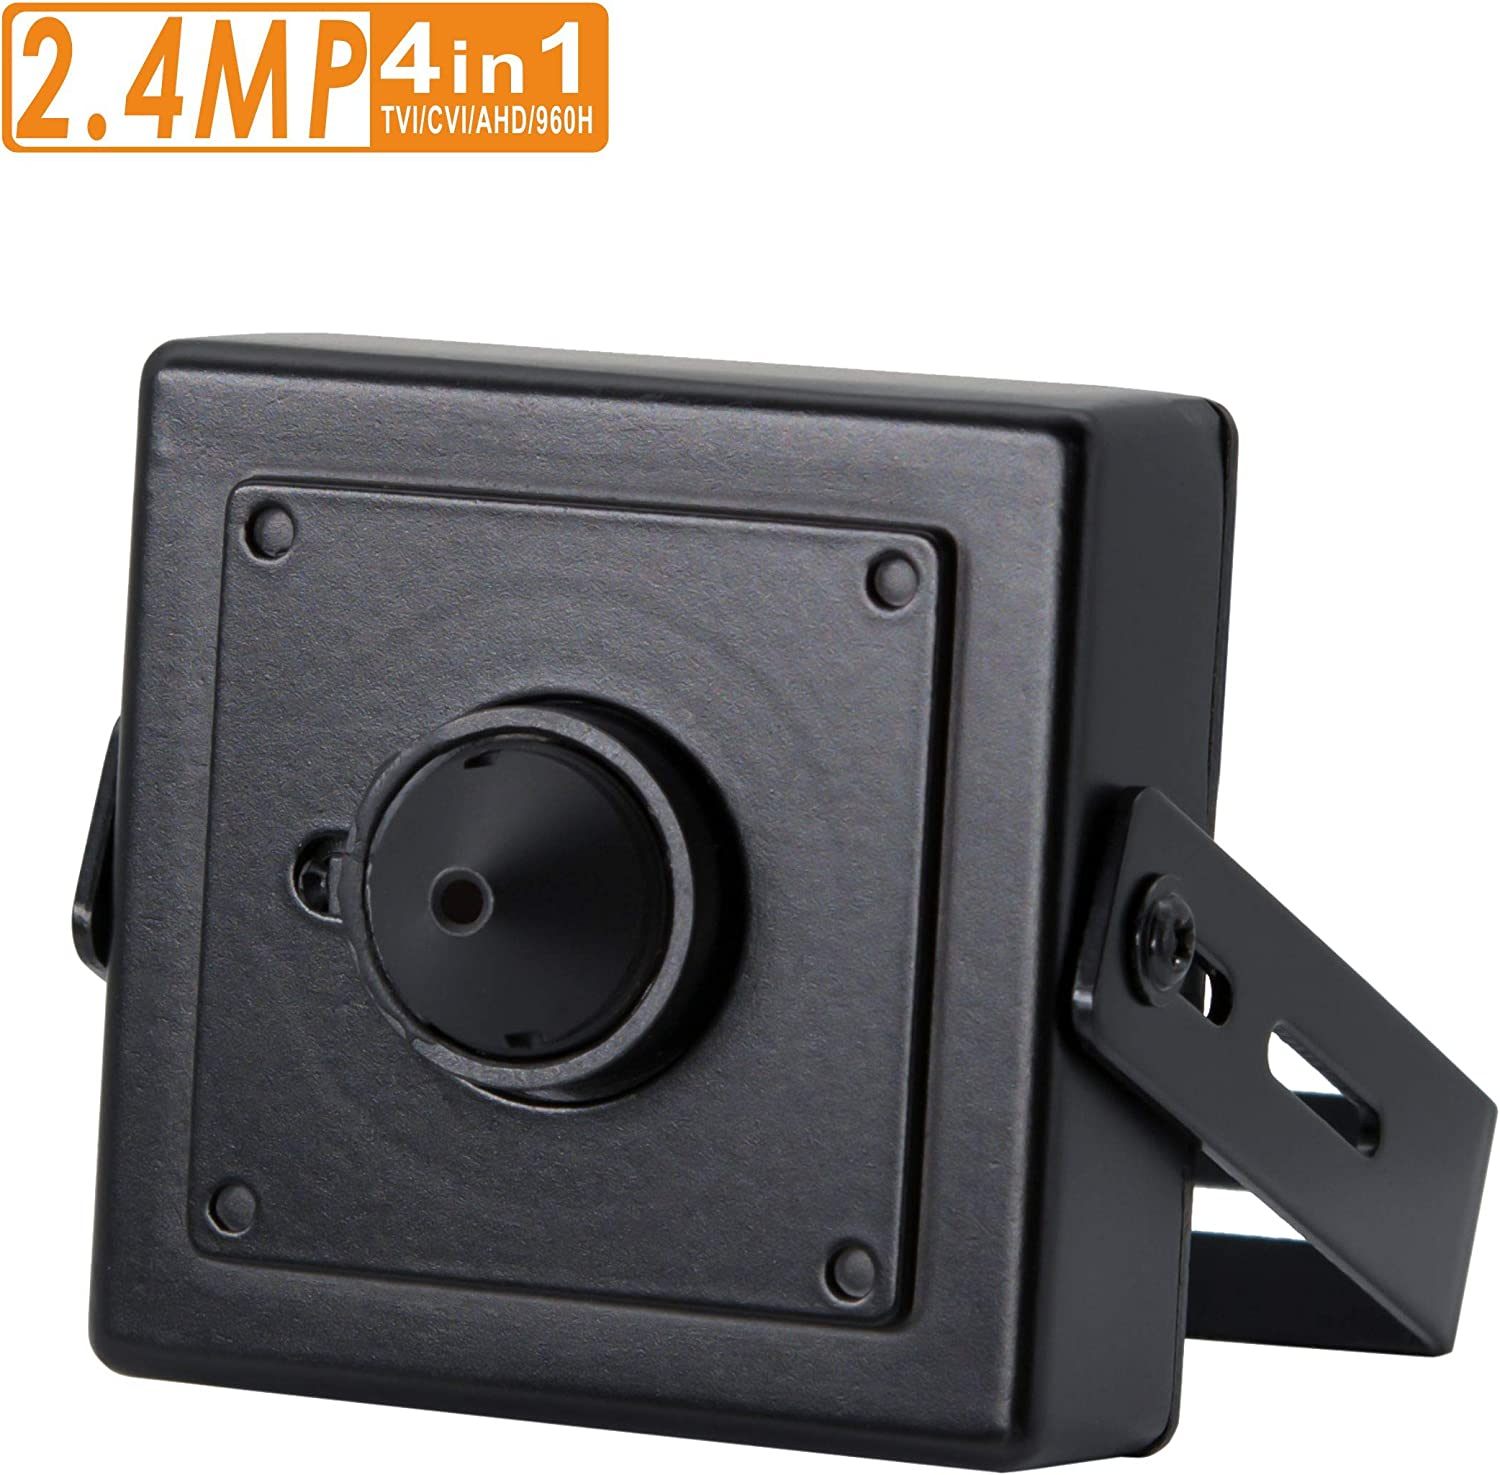 2.4MP Pinhole CCTV Camera, 3.7mm Pinhole Mini Lens, HD TVI CVI AHD 960H Output, Hidden Spy CCTV Surveillance Security System-Switchable Output